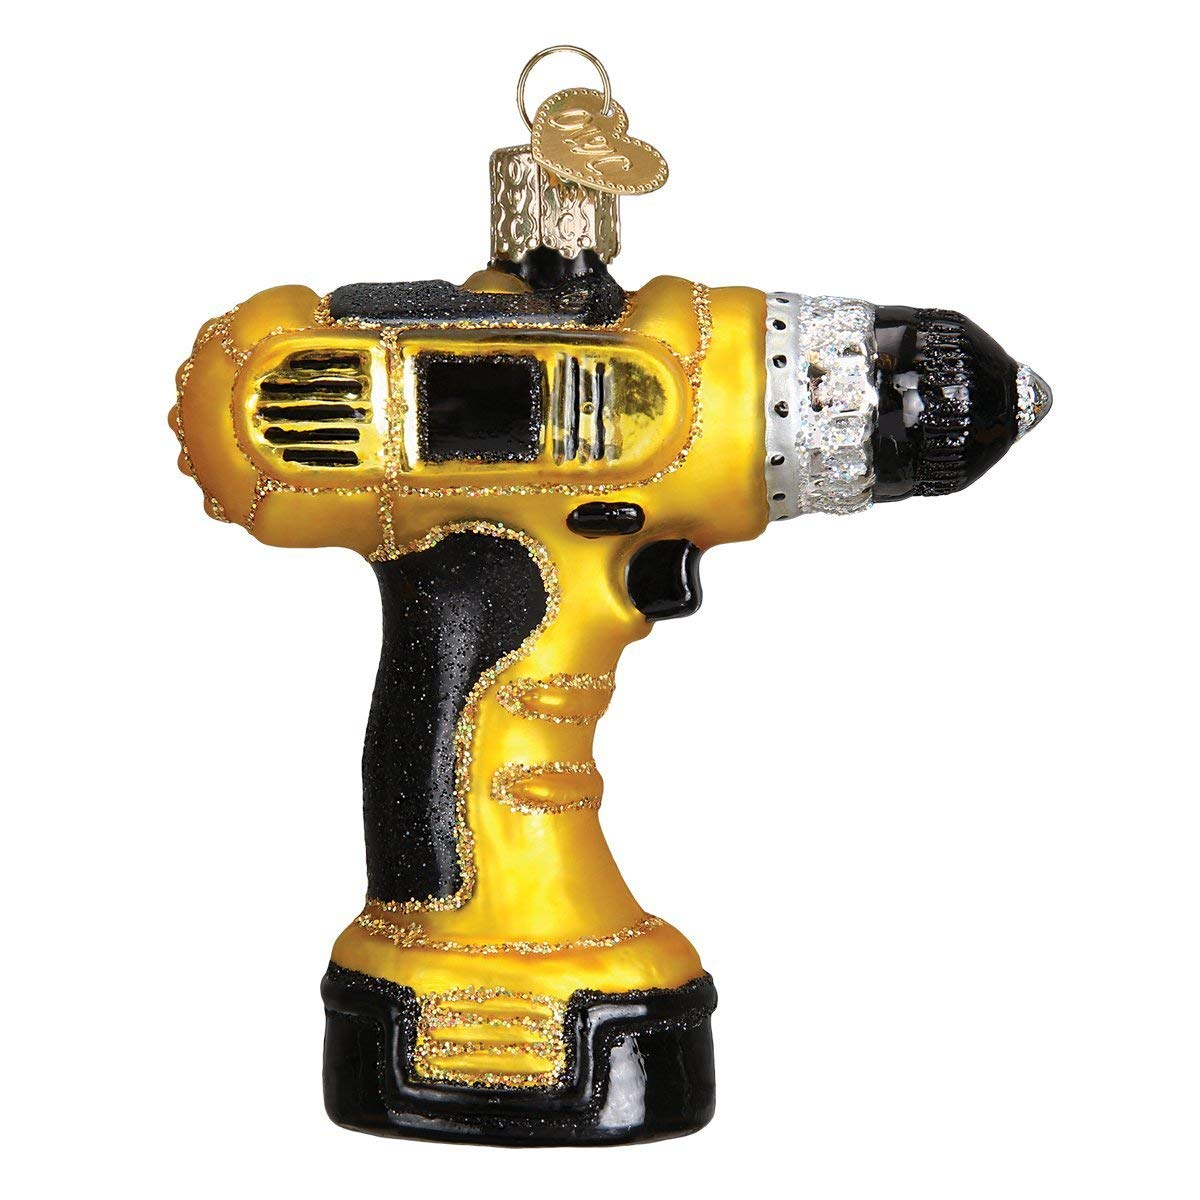 Power Drill Glass Ornament